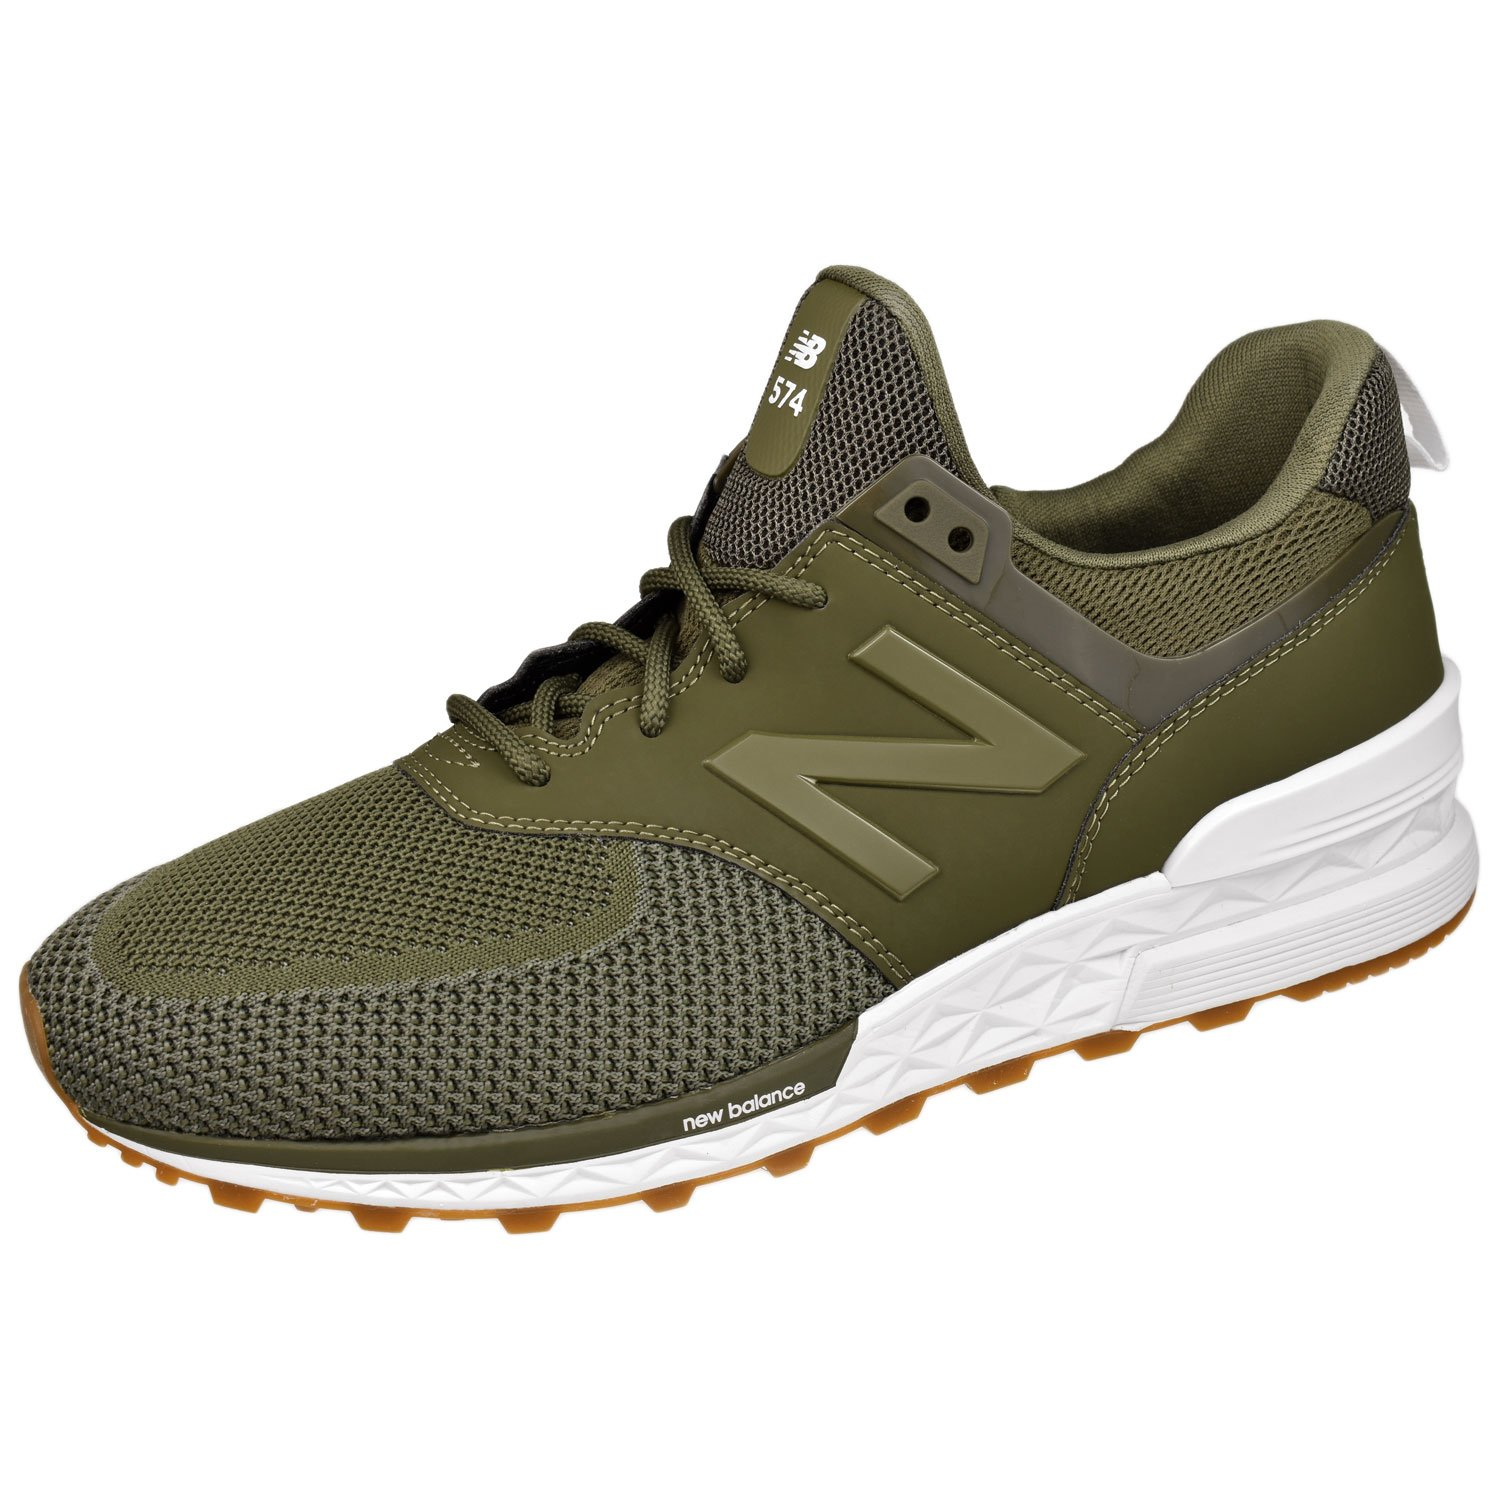 New Balance Men's MS574EMO, Triumph GR, 9 D US